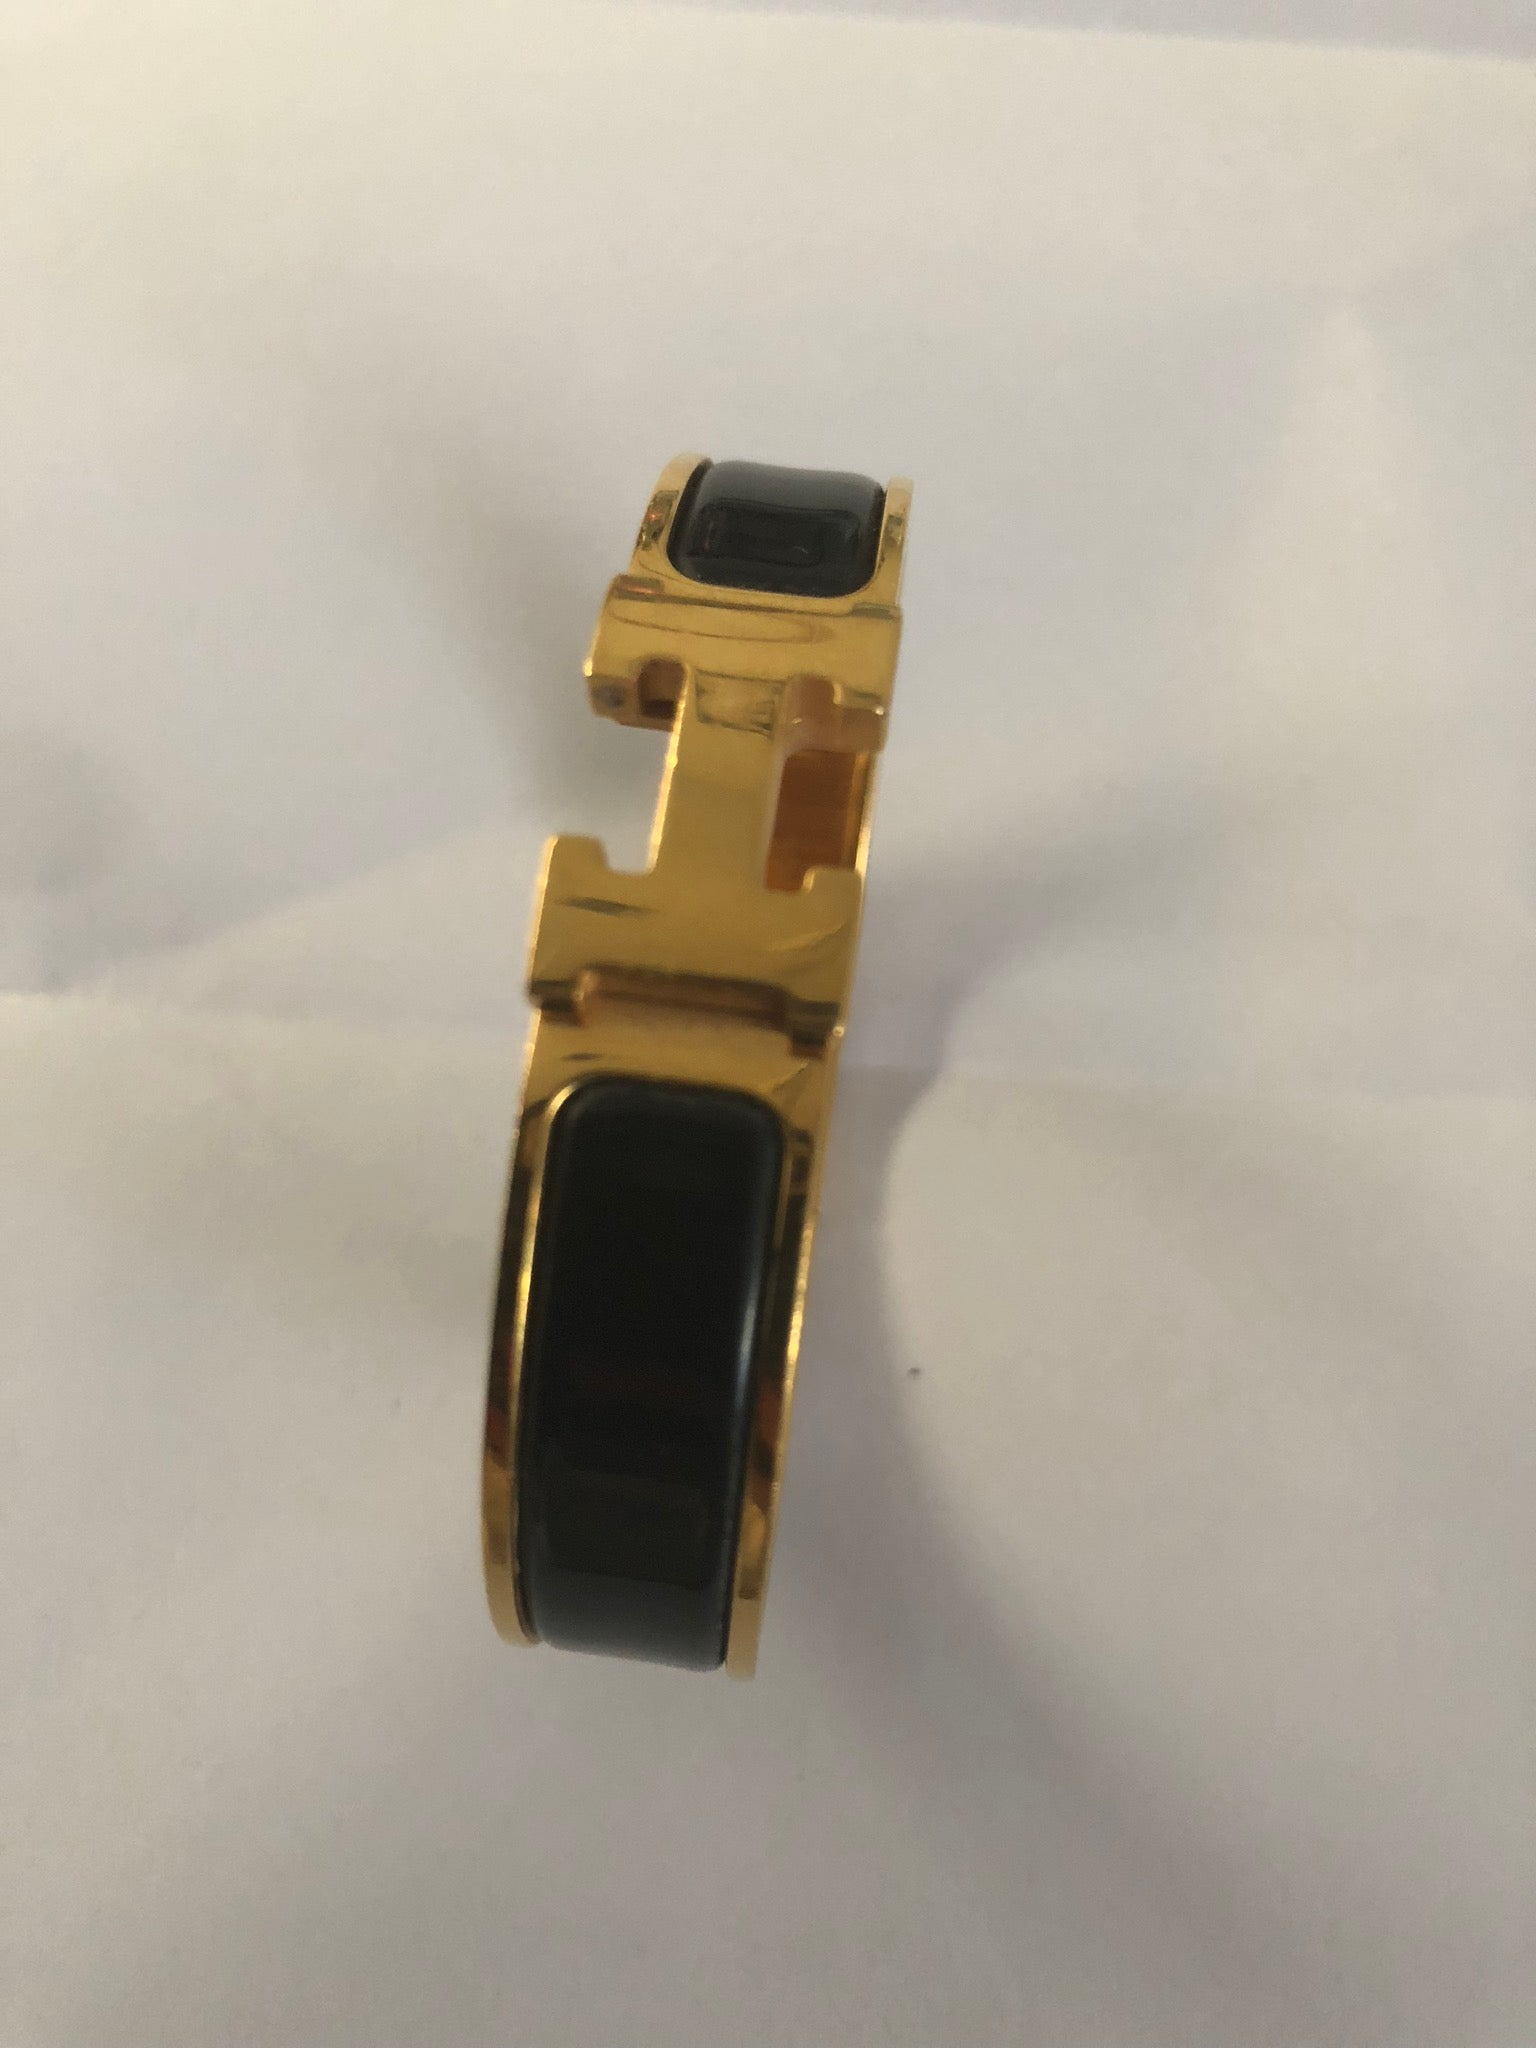 Hermès Clic Clac - Iconics Preloved Luxury